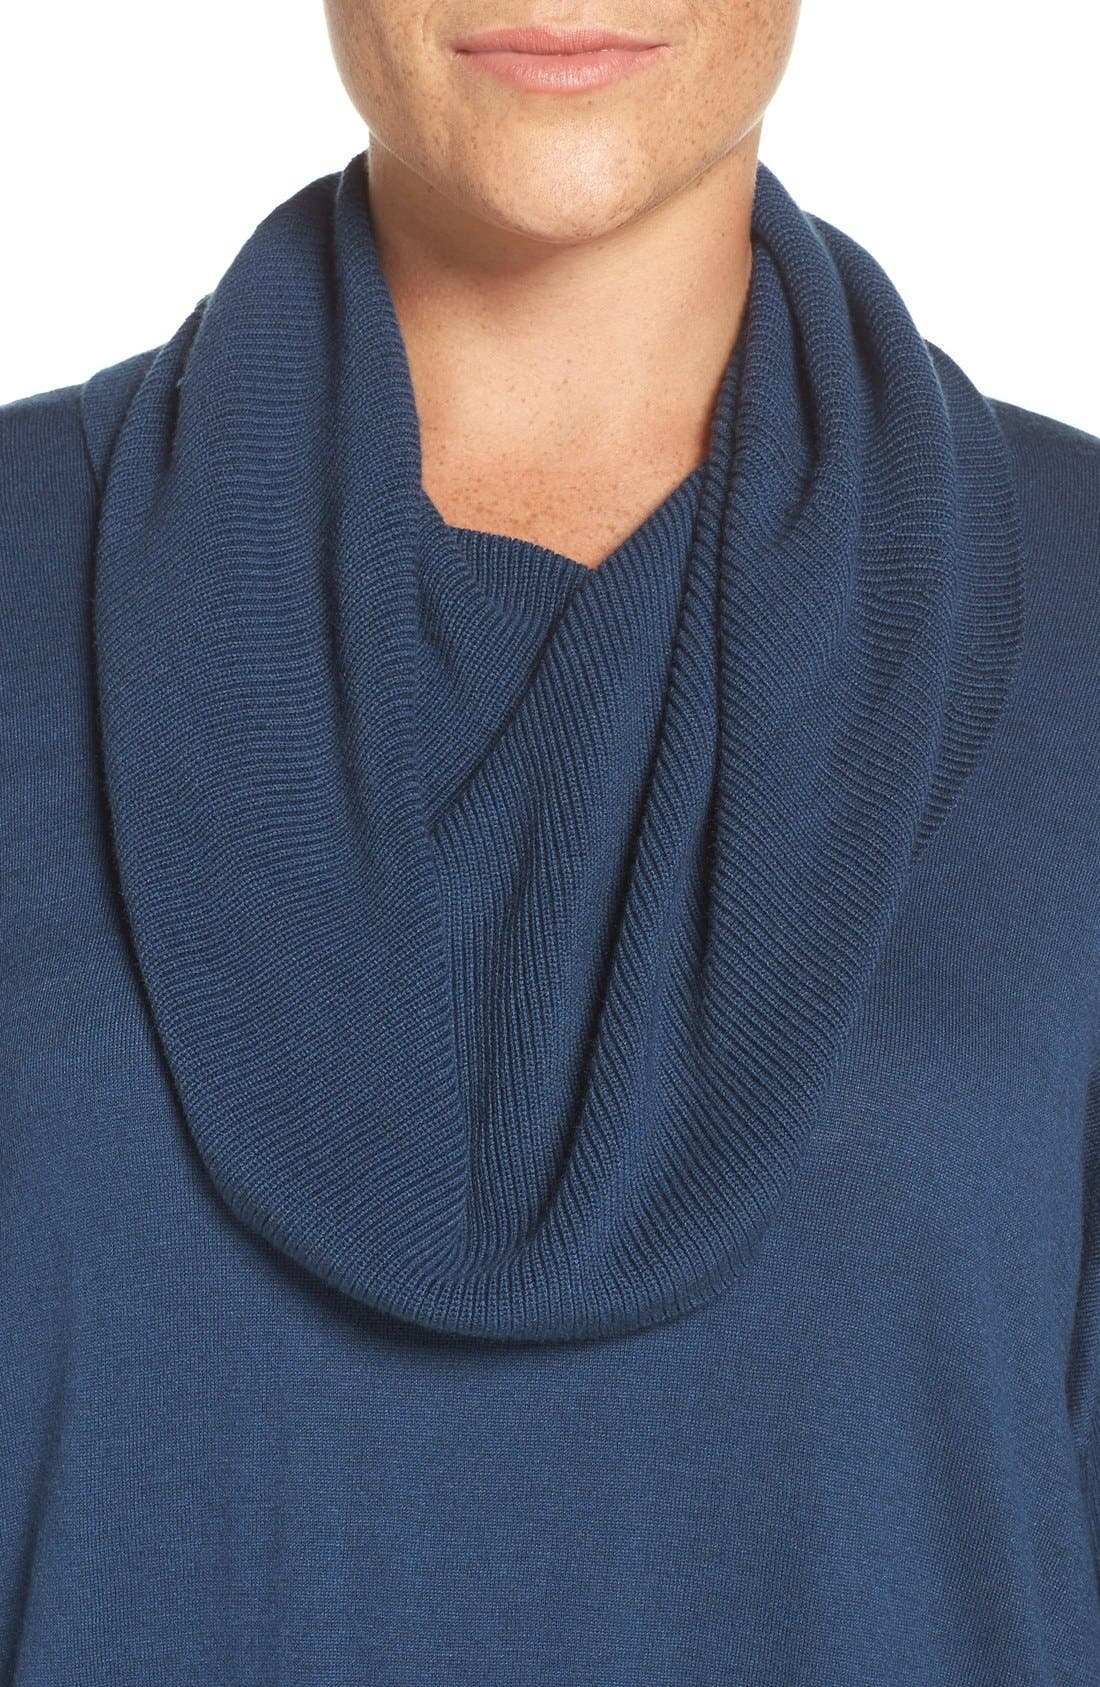 Cowl Neck Tunic Sweater,                             Alternate thumbnail 32, color,